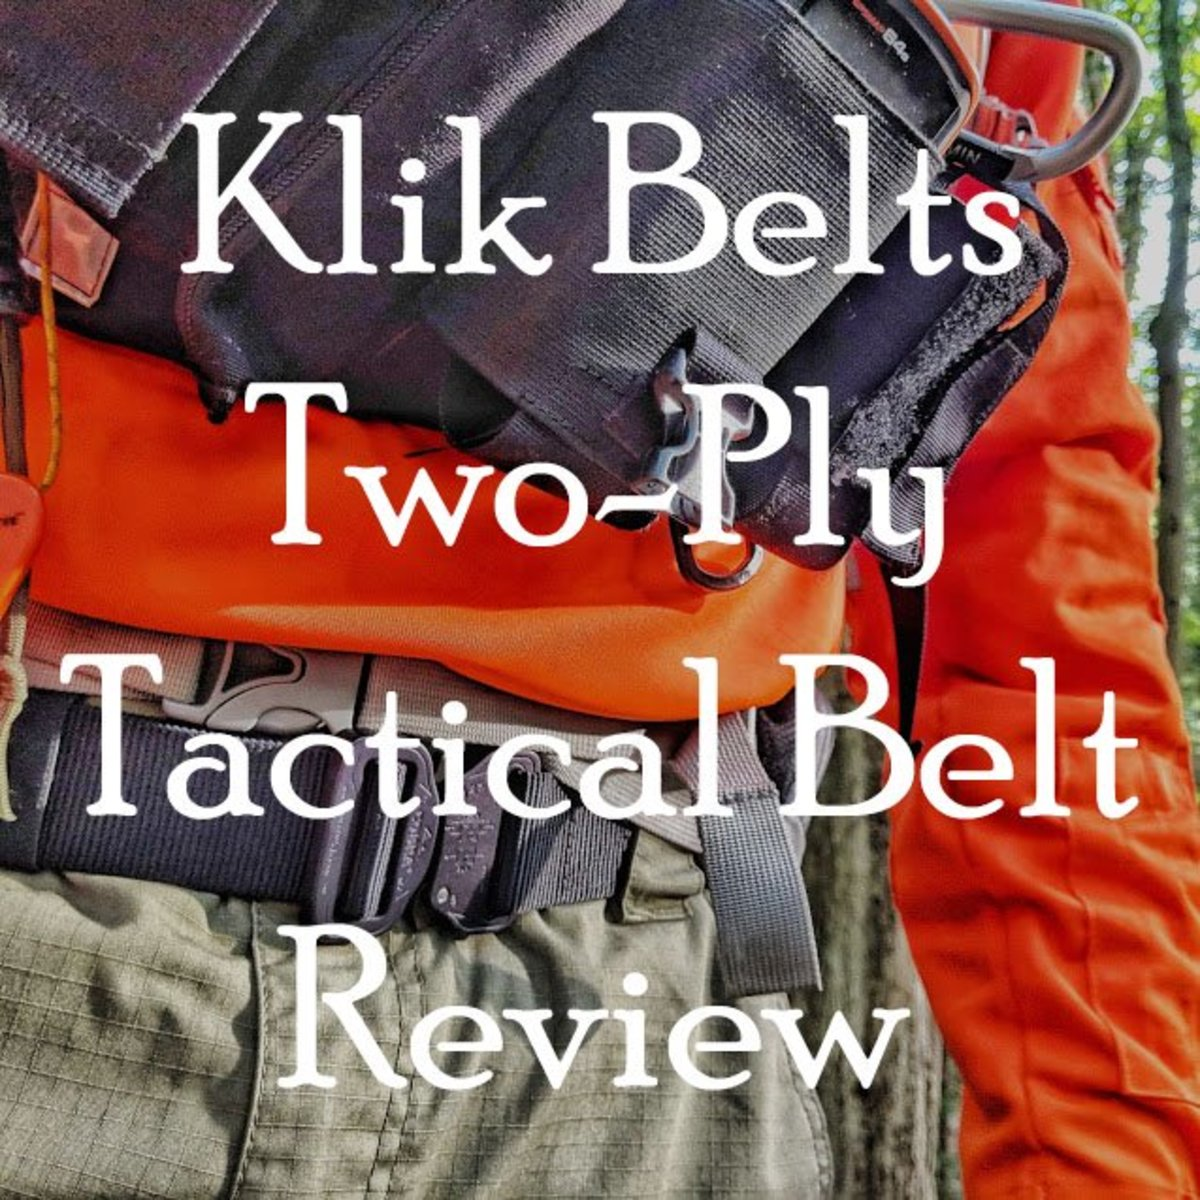 Klik Belts 2-Ply Tactical Search and Rescue Belt Review